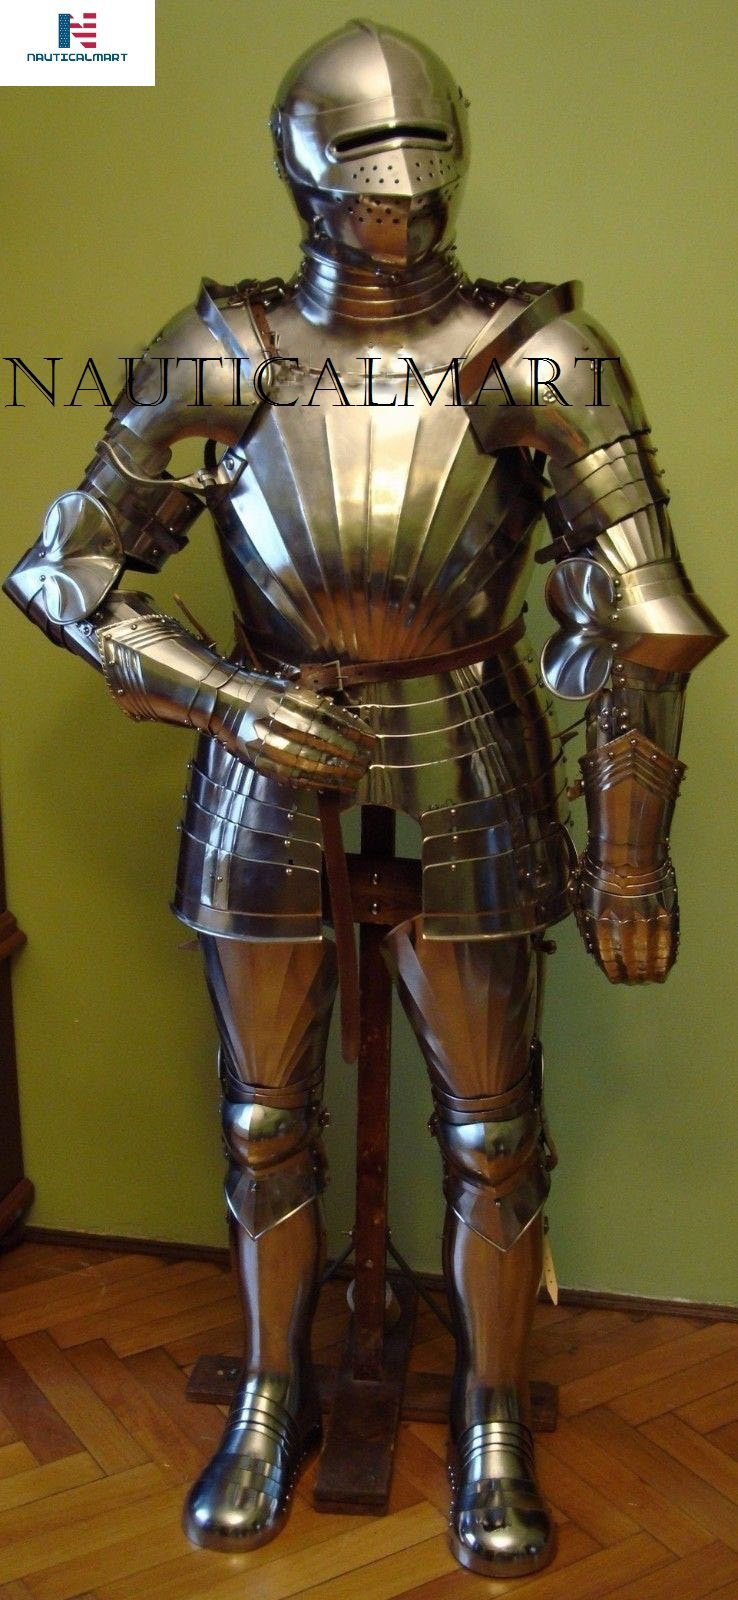 Maximilian Suit of Armor Halloween Costume With Closed Helmet Knight Suit